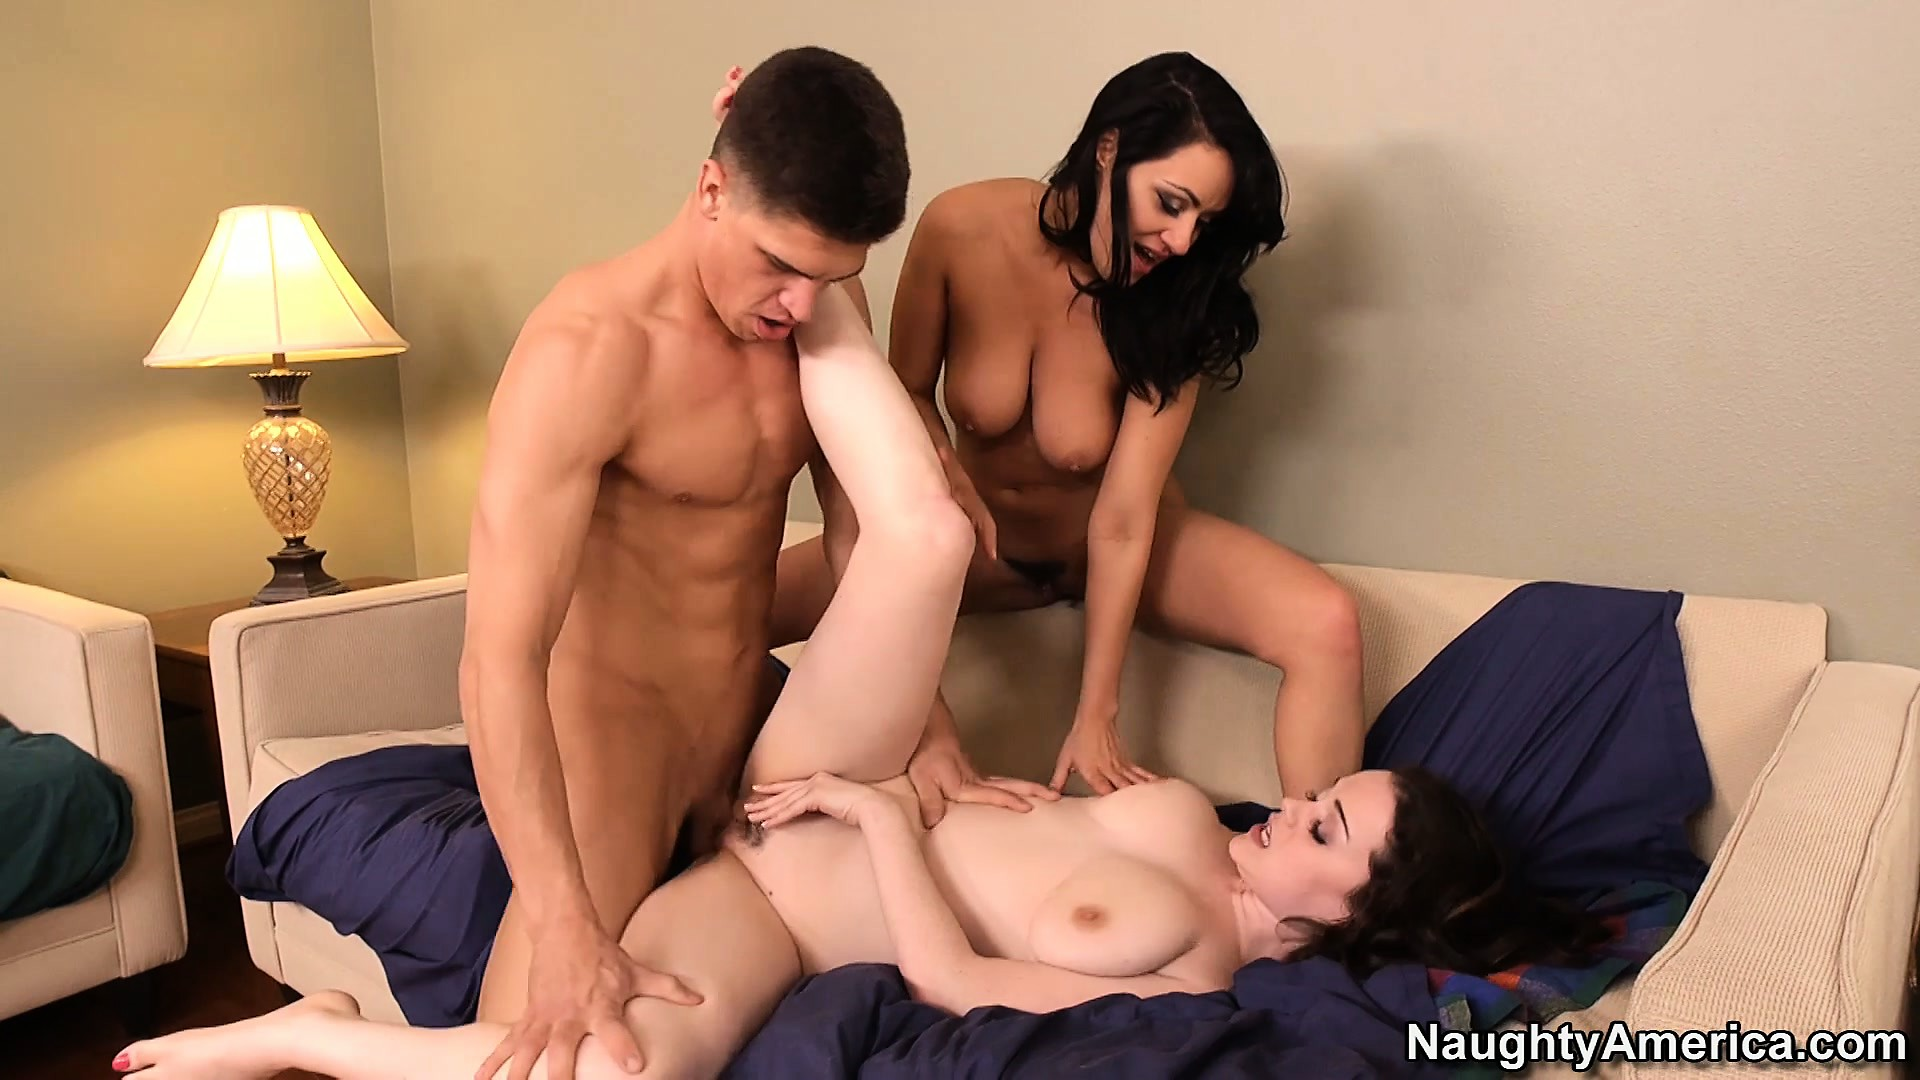 Porn Tube of Fanatical Ffm Threesome Fun With Slutty Charley Chase And Friends